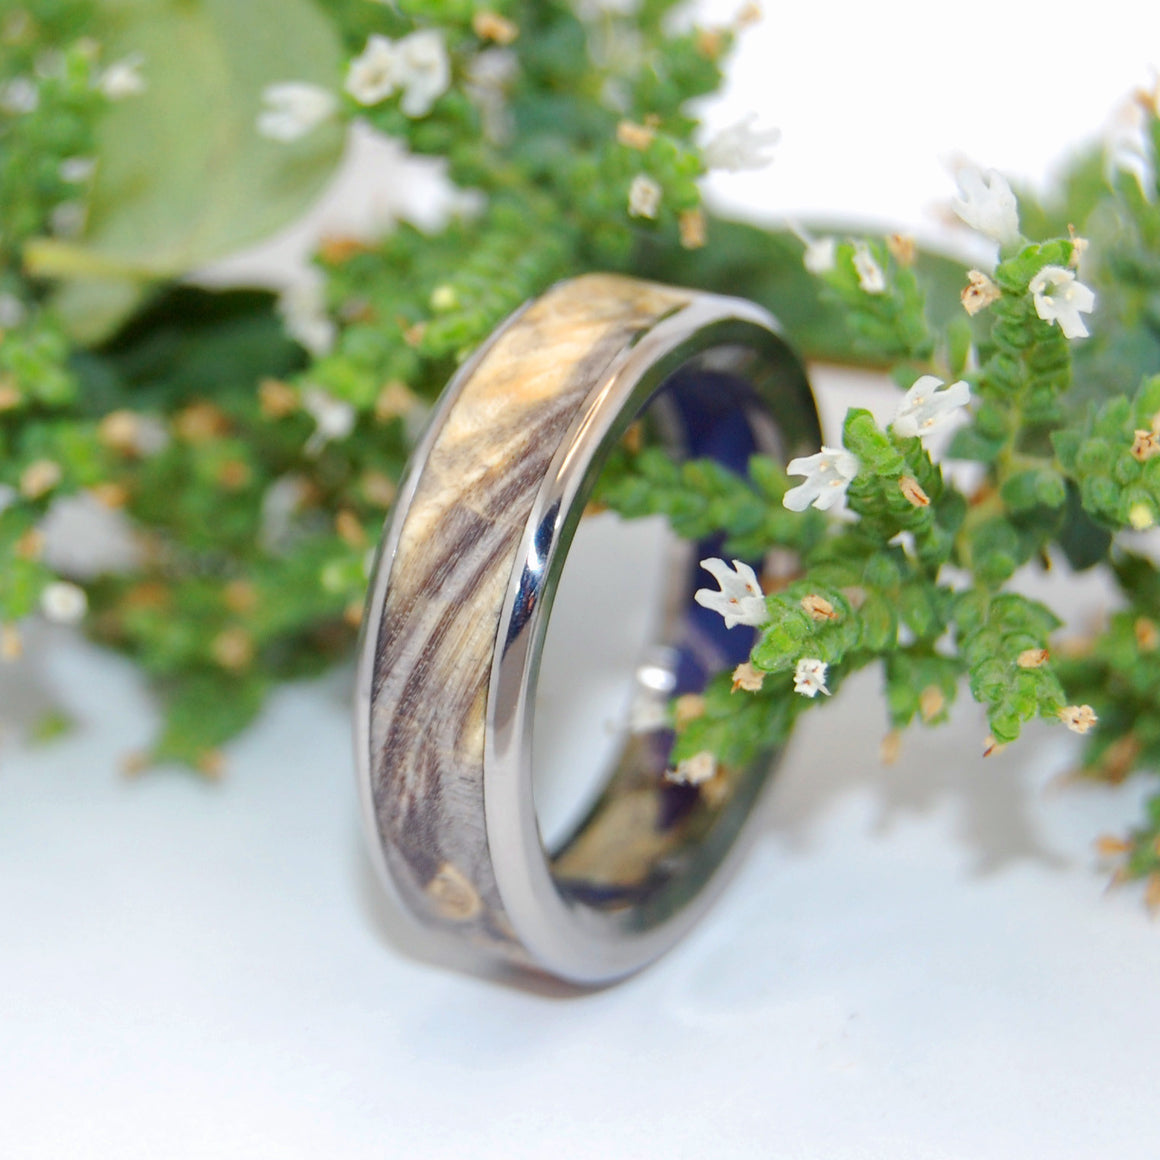 EYES IN YOUR DIRECTION | Buckeye Wood & Box Elder Wood - Unique Wooden Wedding Rings - Minter and Richter Designs